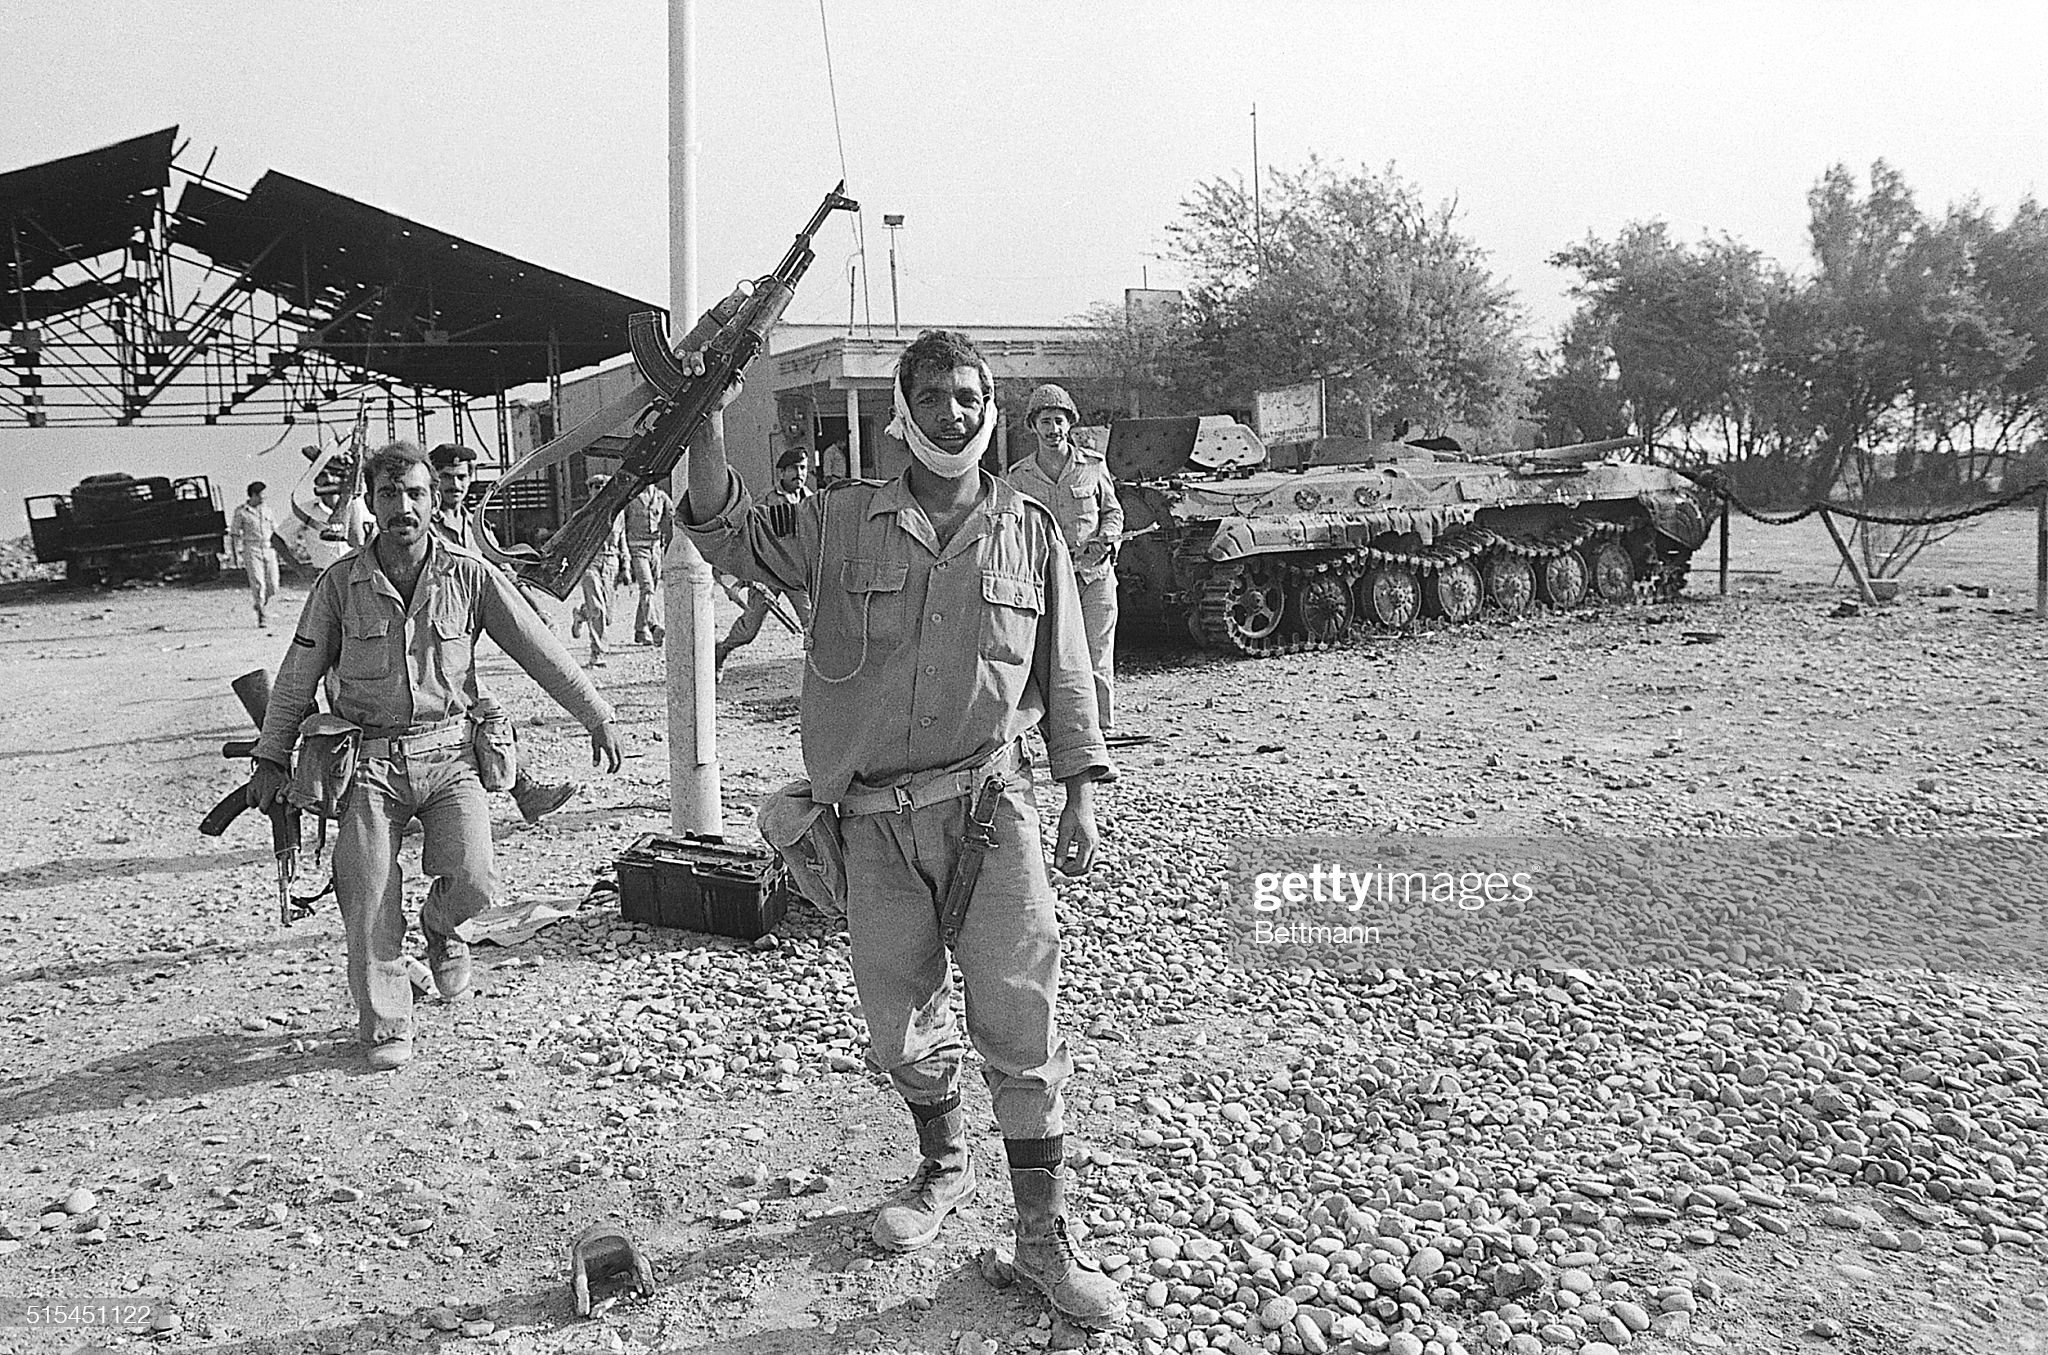 https://media.gettyimages.com/photos/9271980shalamja-iraquioccupied-iran-iraqi-soldiers-at-this-iranian-picture-id515451122?s=2048x2048